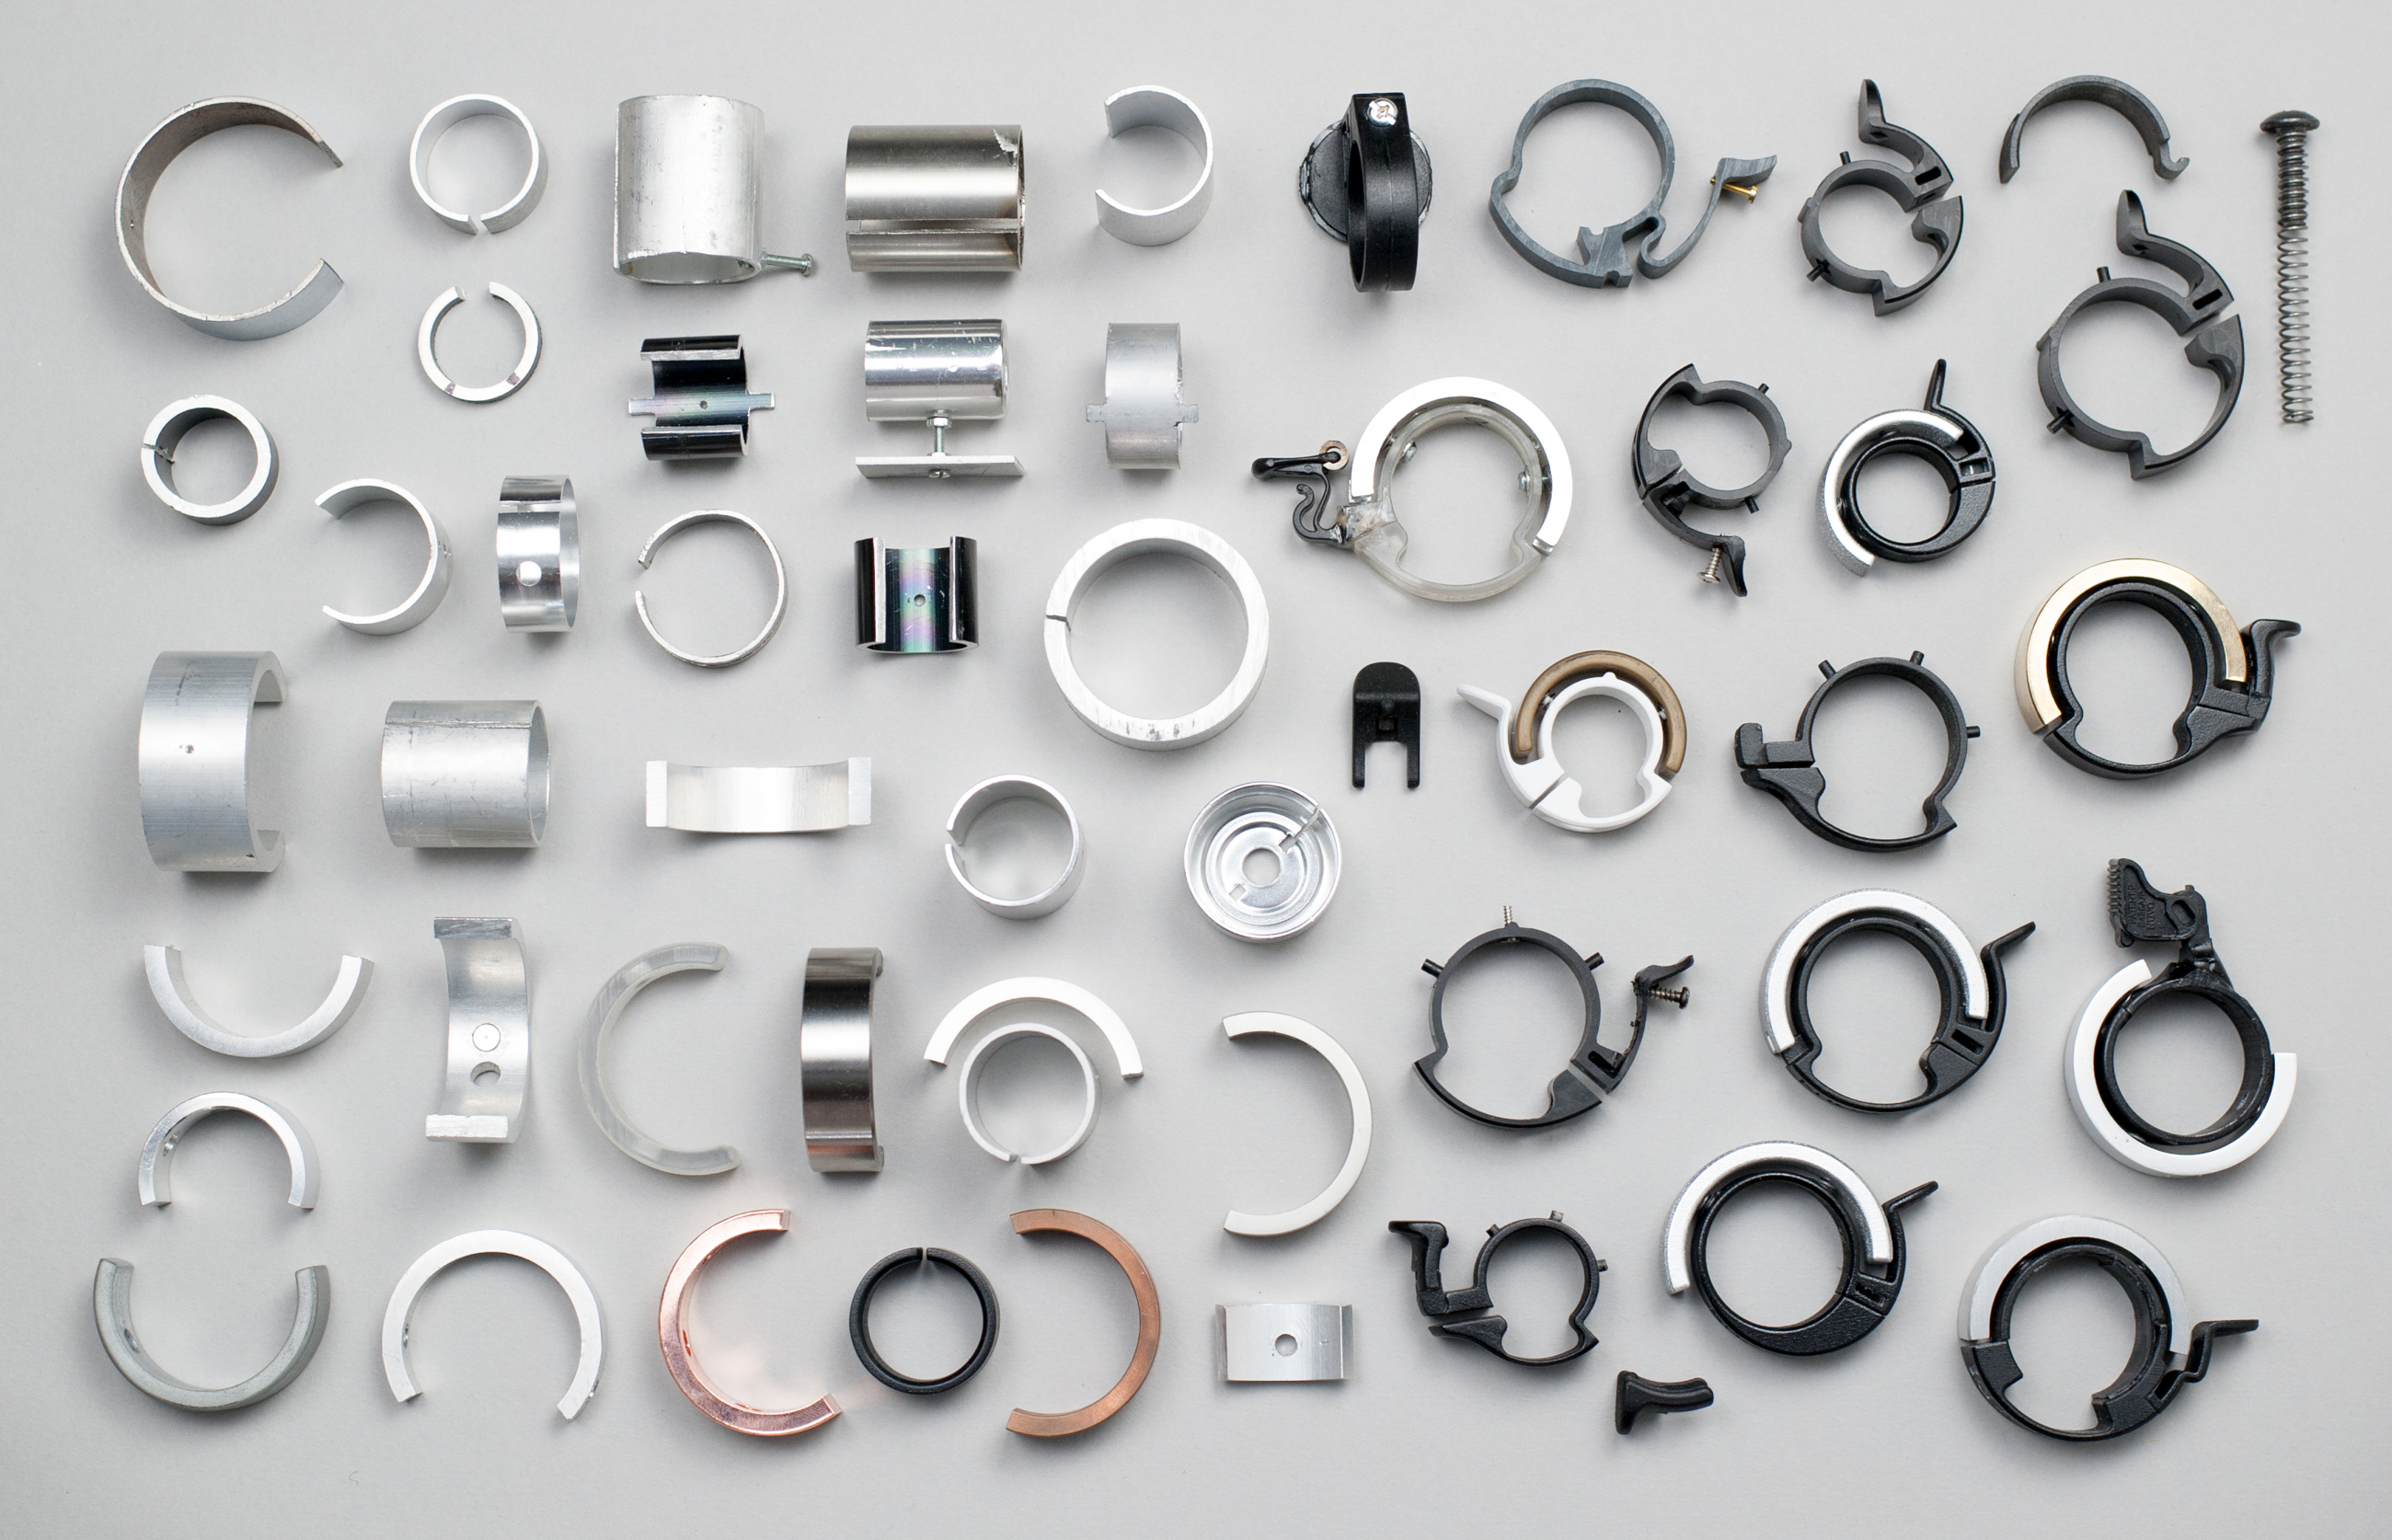 A portion of the prototypes that led to the Oi. Photo: Courtesy of Knog